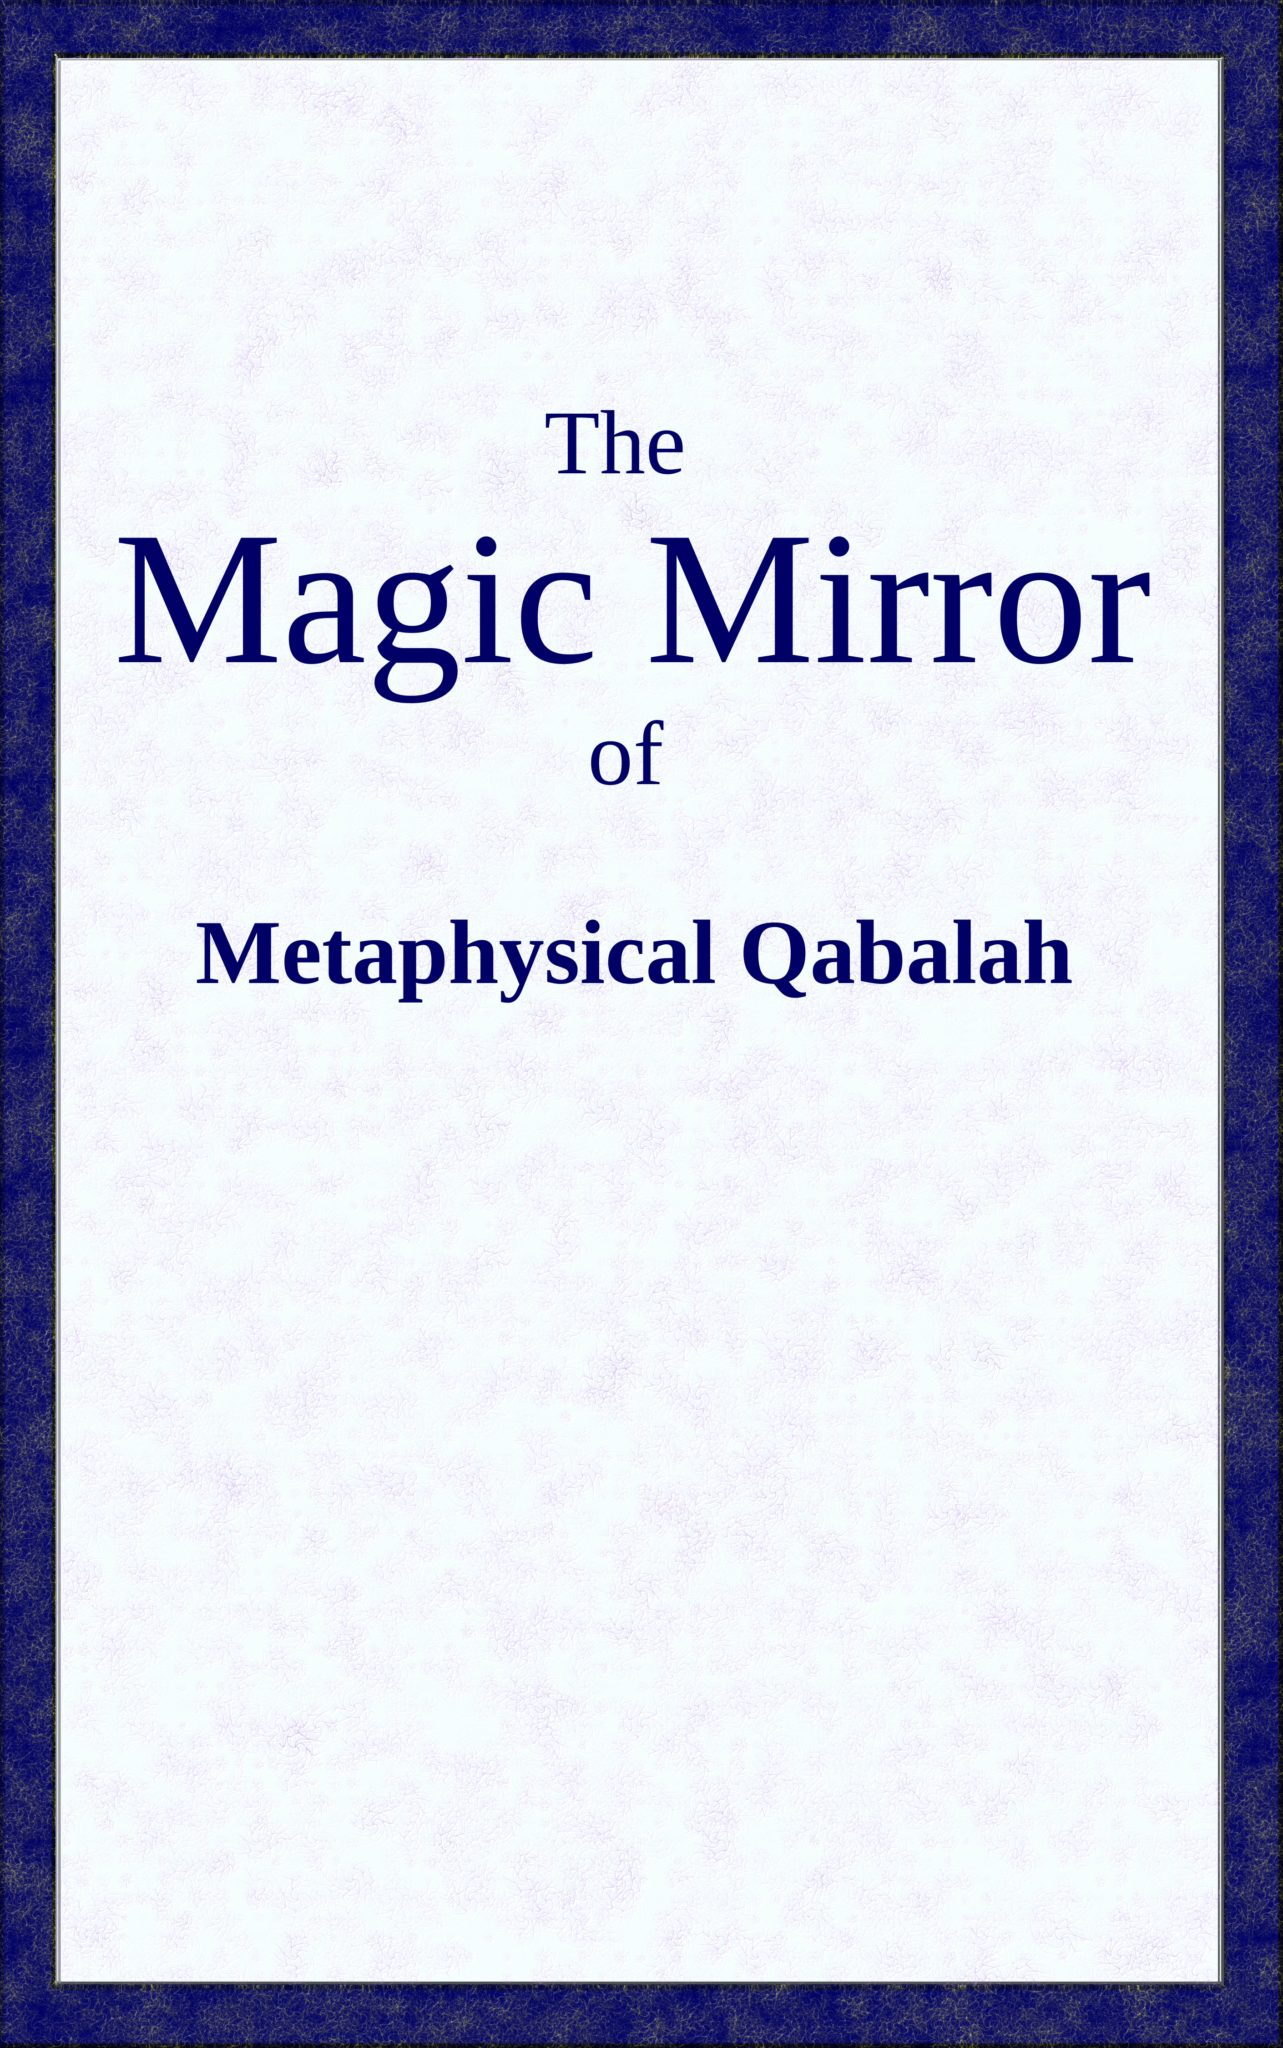 the Magic Mirror of Metaphysical Qabalah